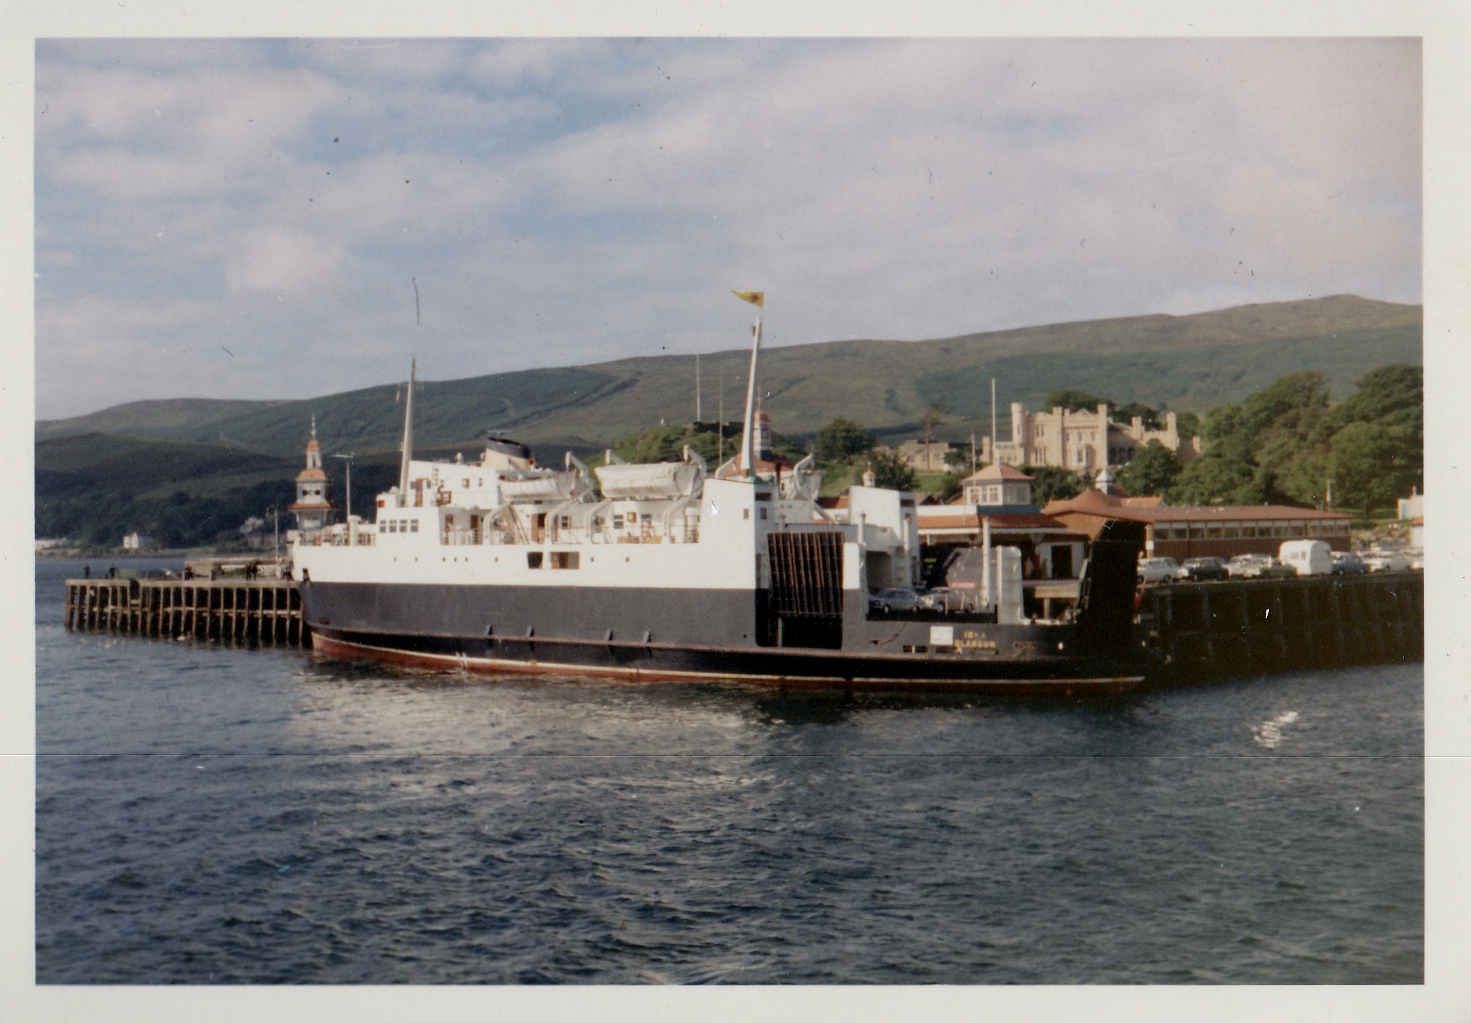 Iona at Dunoon (Jim Aikman Smith)